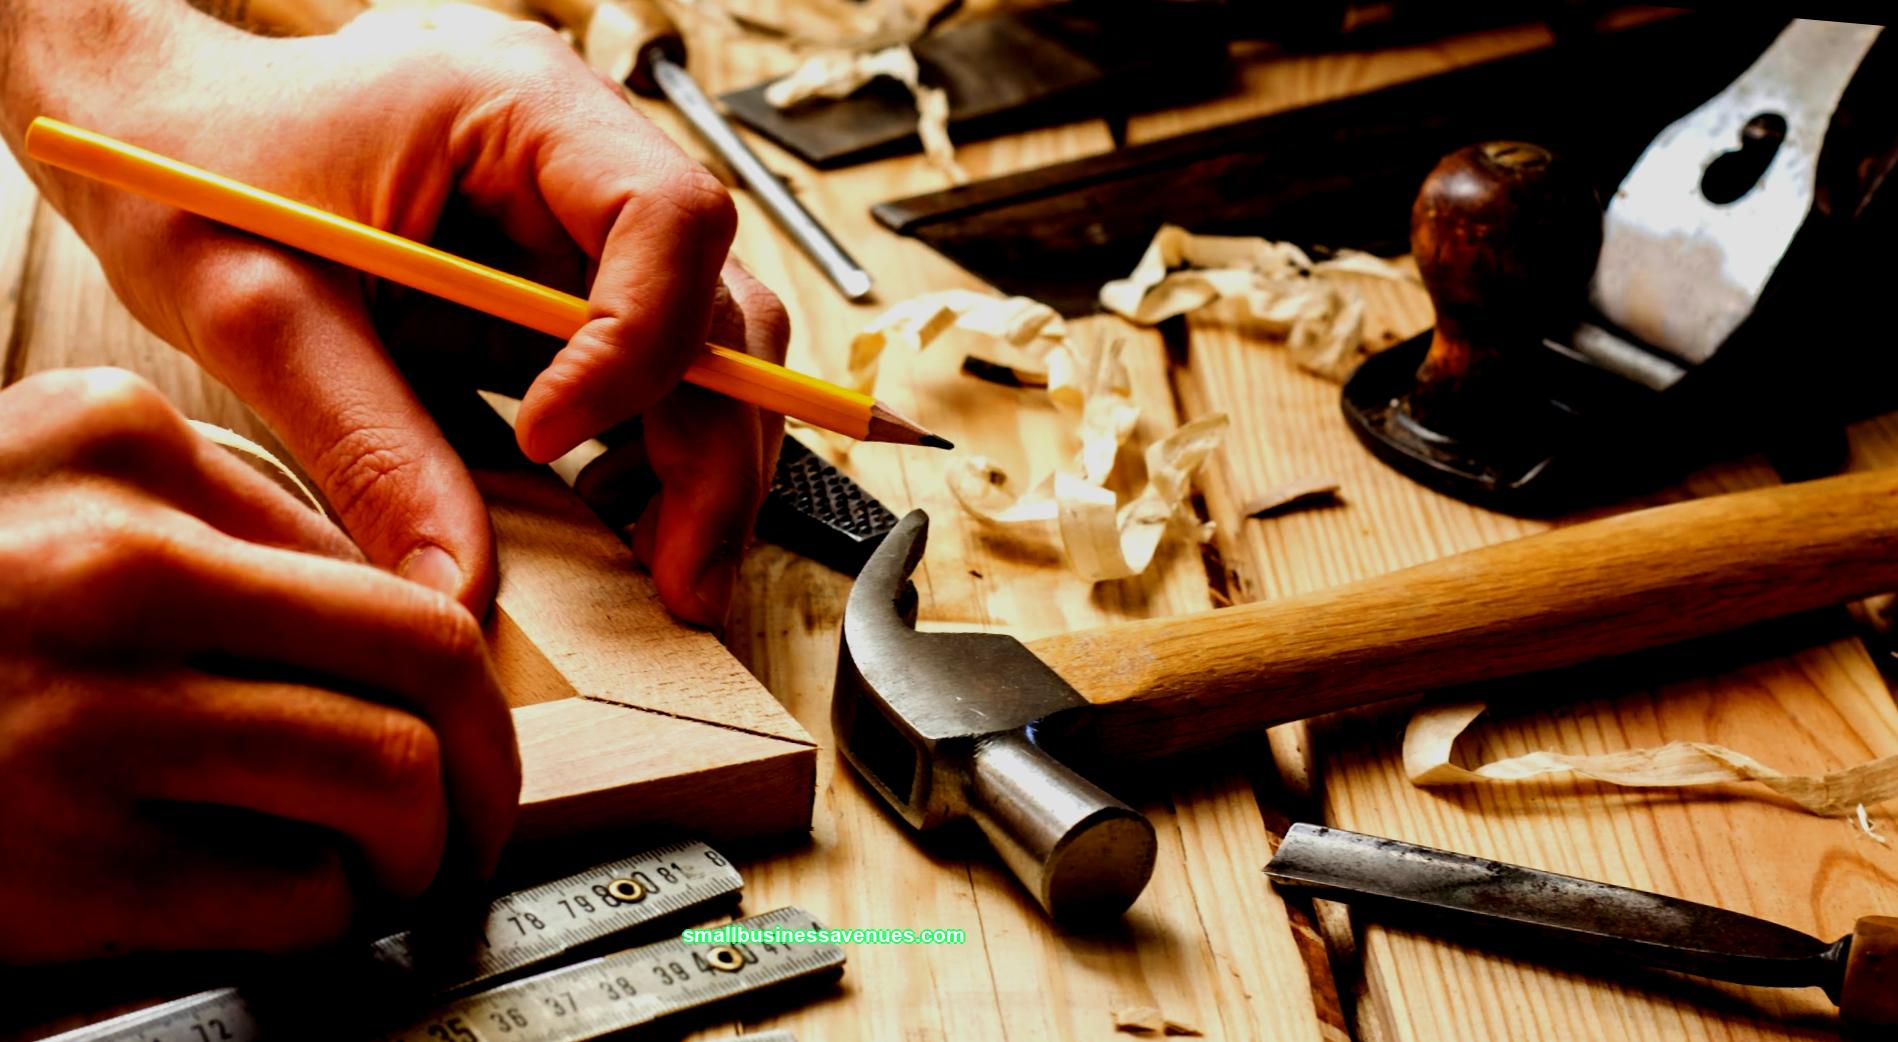 Carpentry workshop business plan, business relevance, target audience and market analysis, business advantages and disadvantages, workshop registration, small business in the garage, financial investments, project payback, possible risks